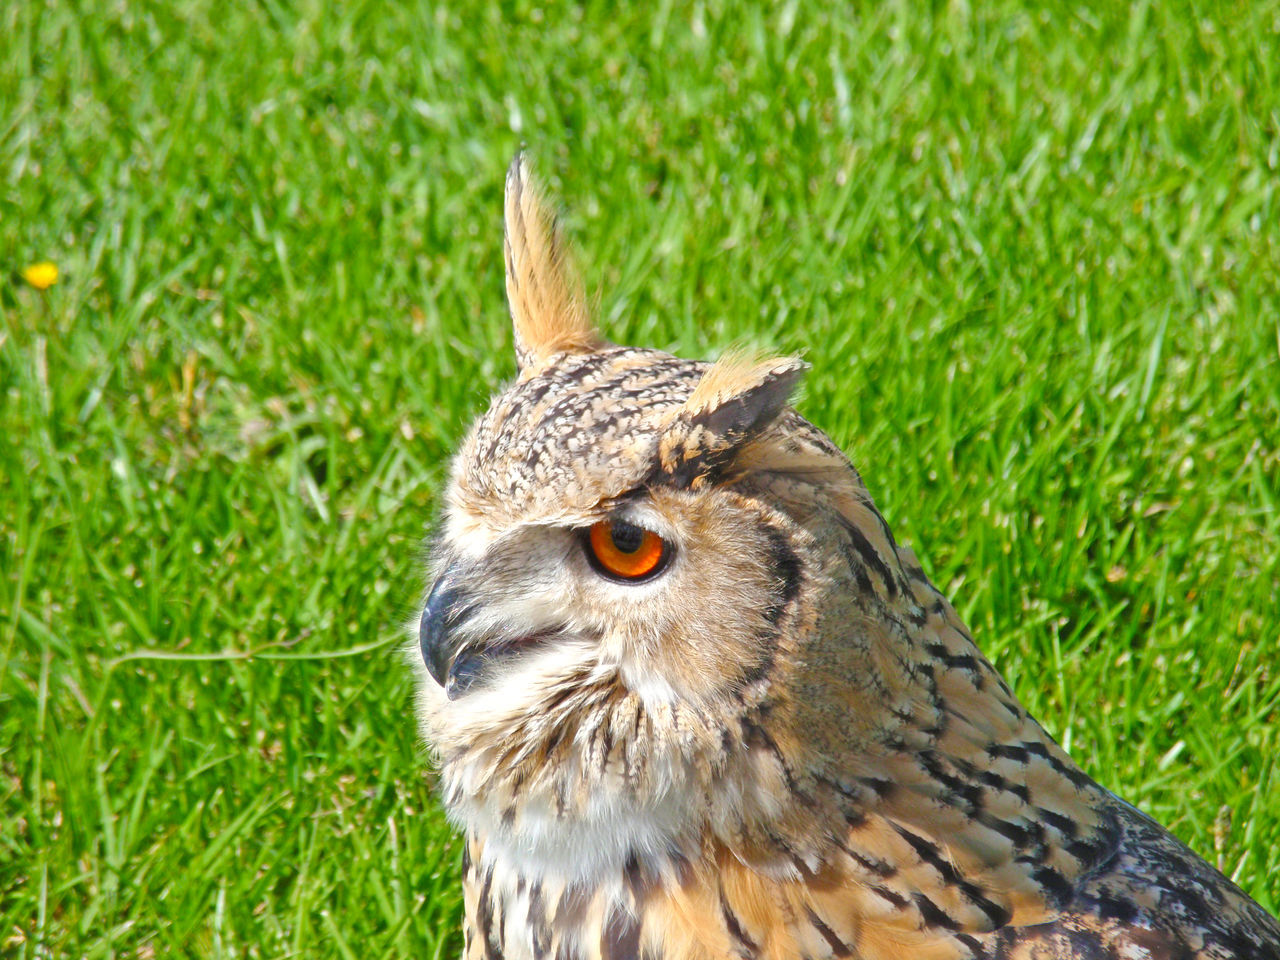 Animal Animal Themes Animal Wildlife Animals Animals In The Wild Beauty In Nature Bird Bird Of Prey Birds Bubo Bubo Day Environment Falconry Fauna Grass Nature Nature No People One Animal Outdoors Owl Owl Eyes Owls Wildlife